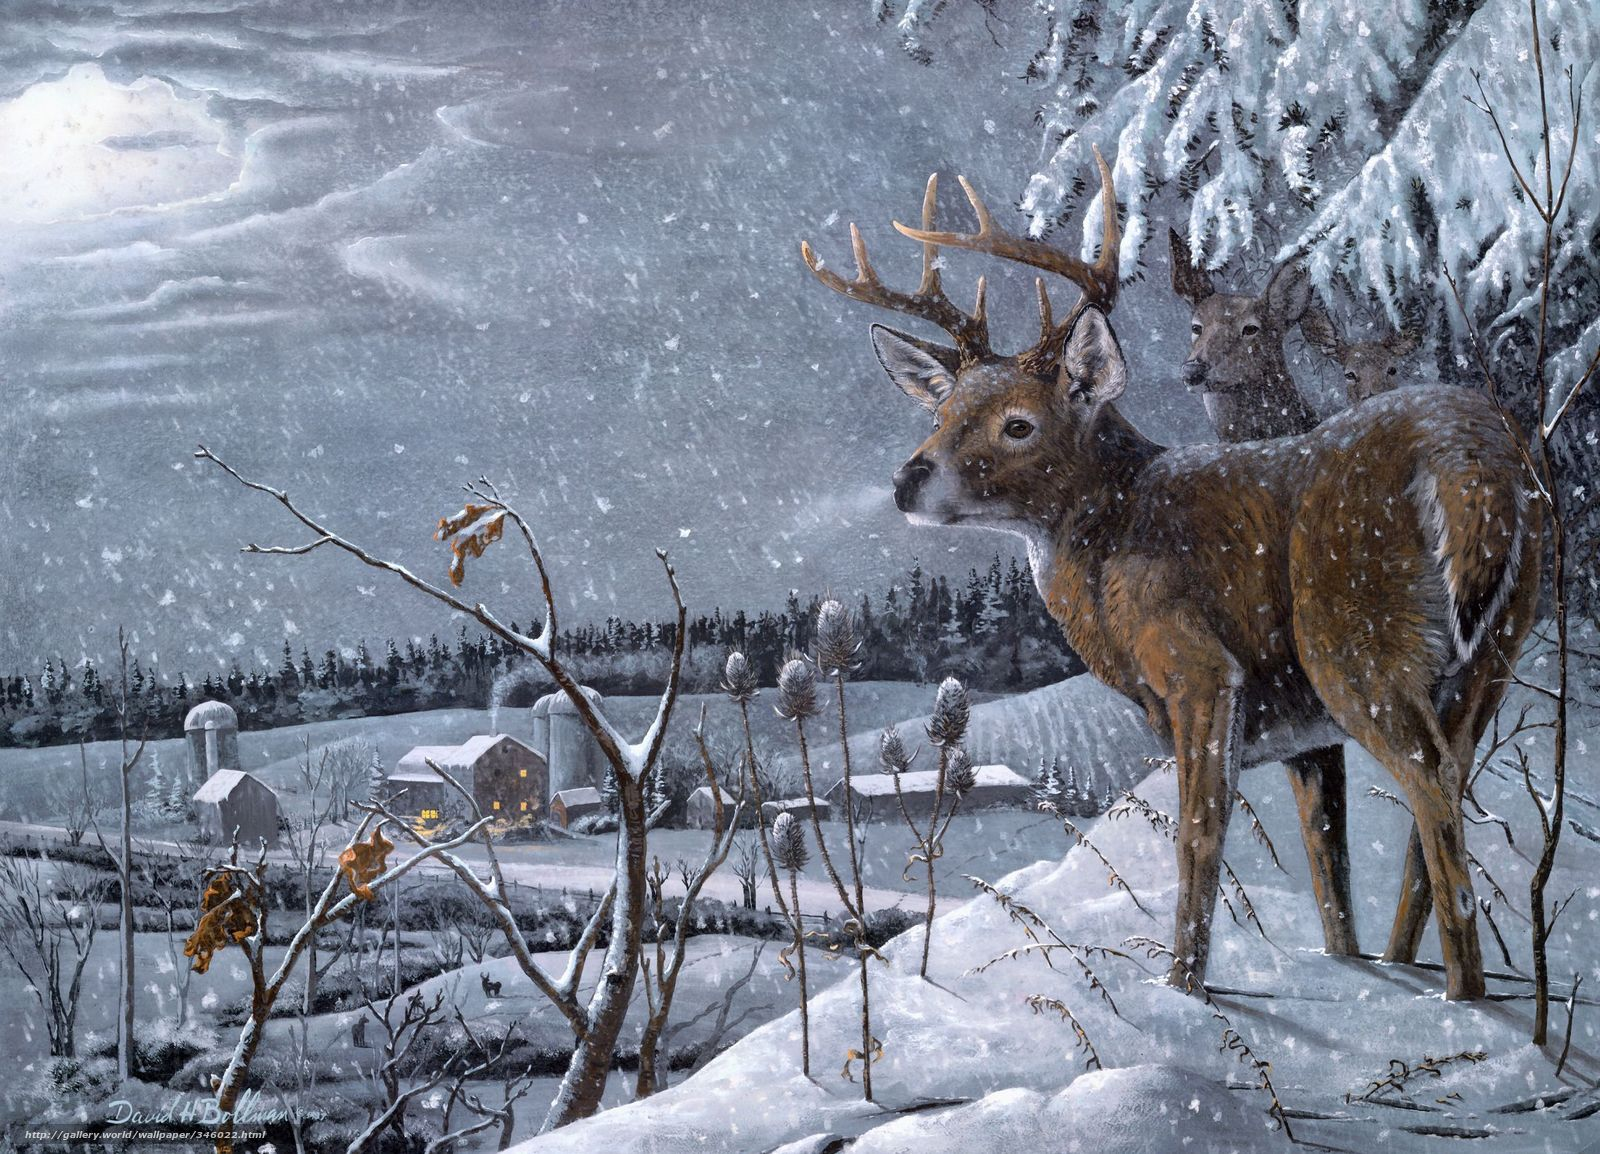 wallpaper david h bollman Deer Winter snow desktop wallpaper 1600x1154